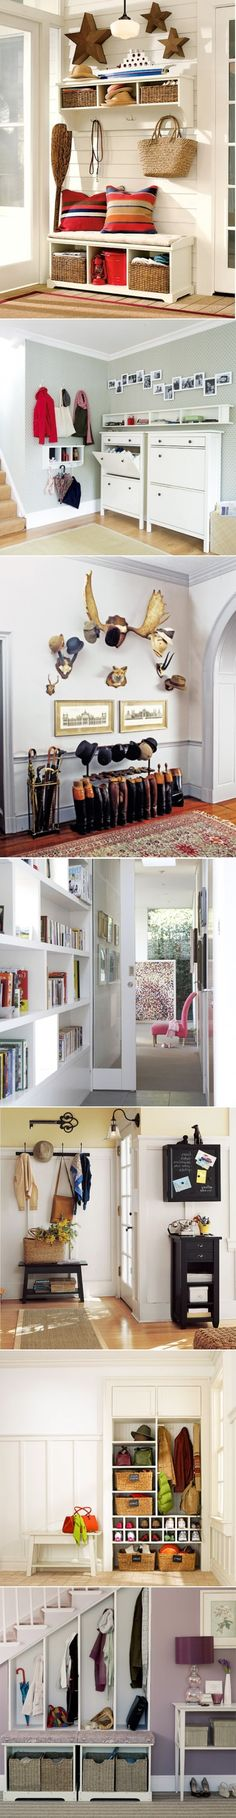 DIY mudroom and hallway storage ideas using organisation tips and ideas to suit… Creative Storage, Diy Storage, Storage Ideas, Shoe Storage, Halls, Hallway Storage, Bedroom Storage, Mudroom, Home Projects